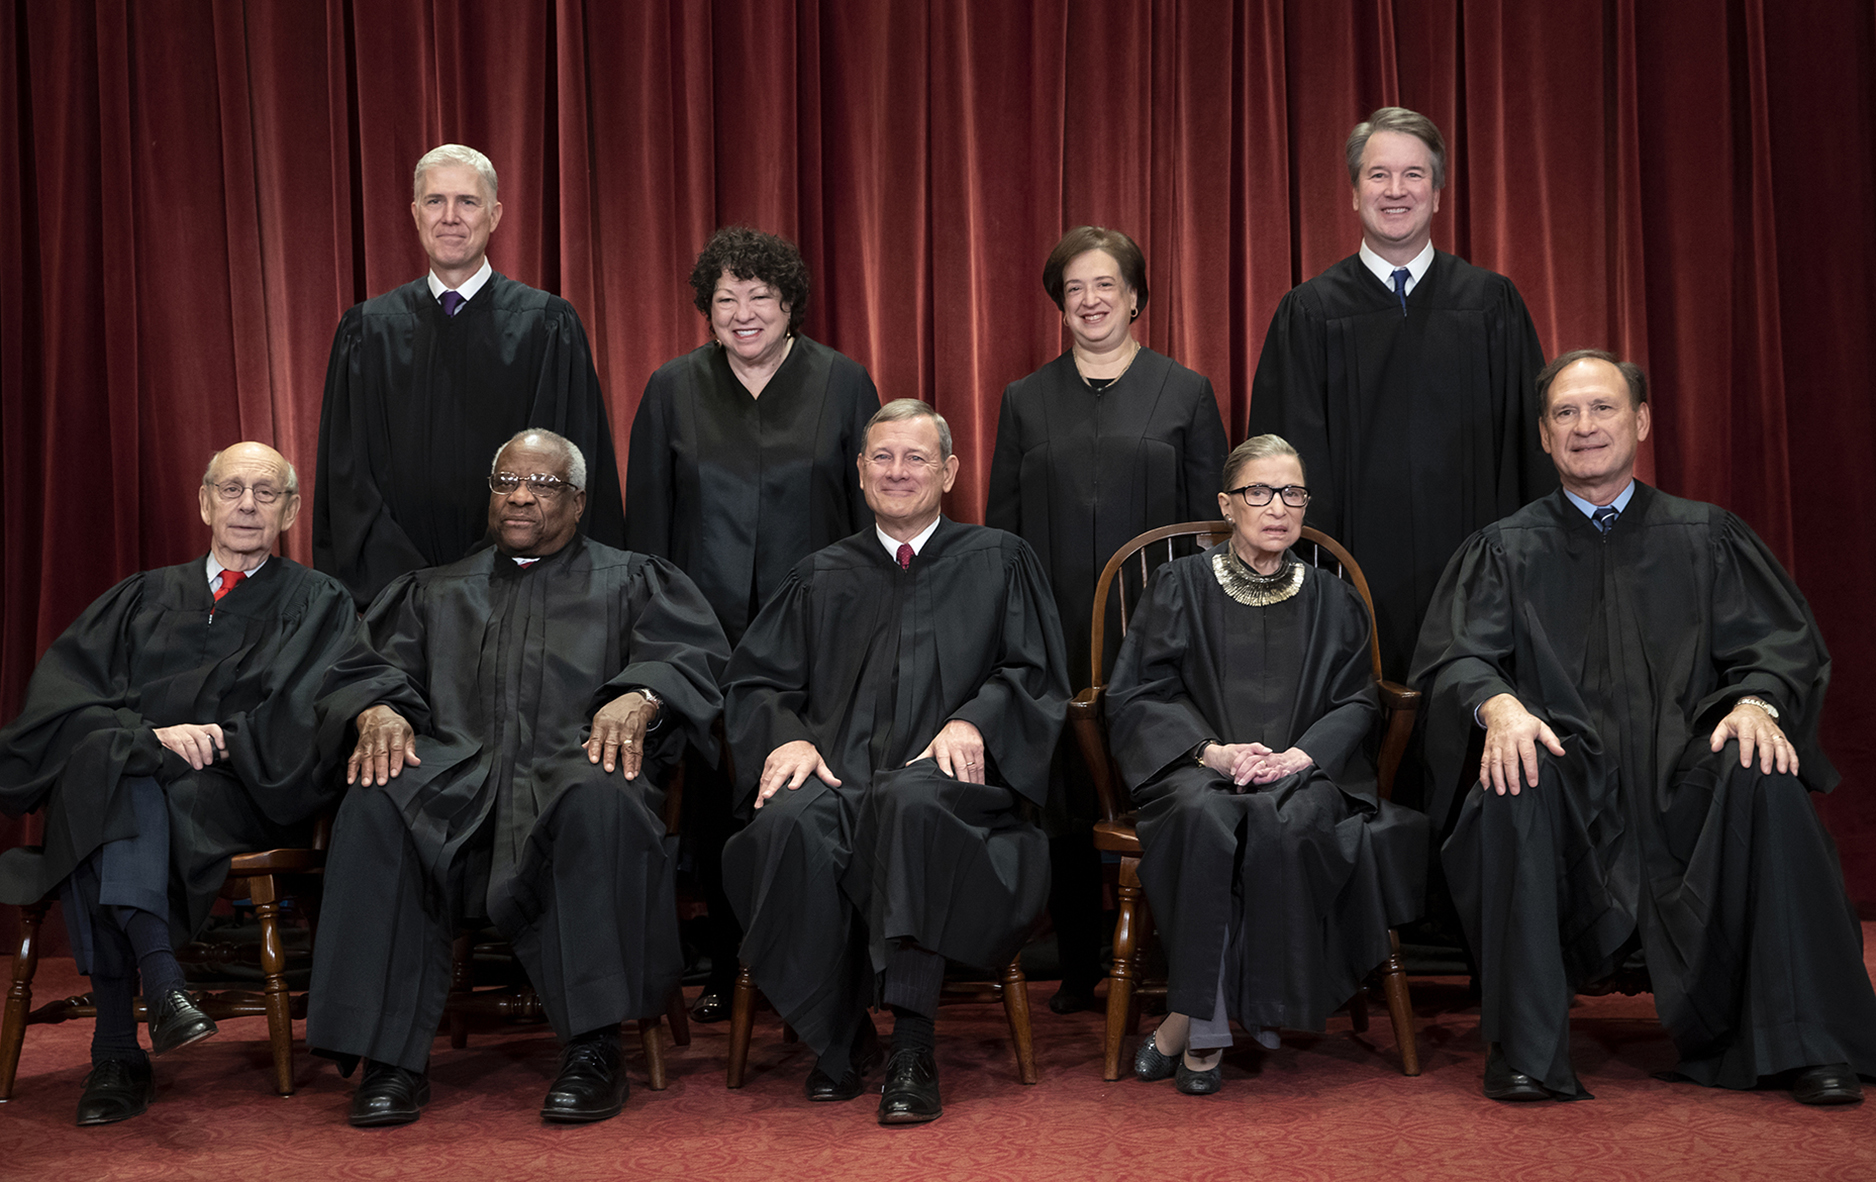 How long each Supreme Court Justice has served on the bench, and how long it took to confirm them